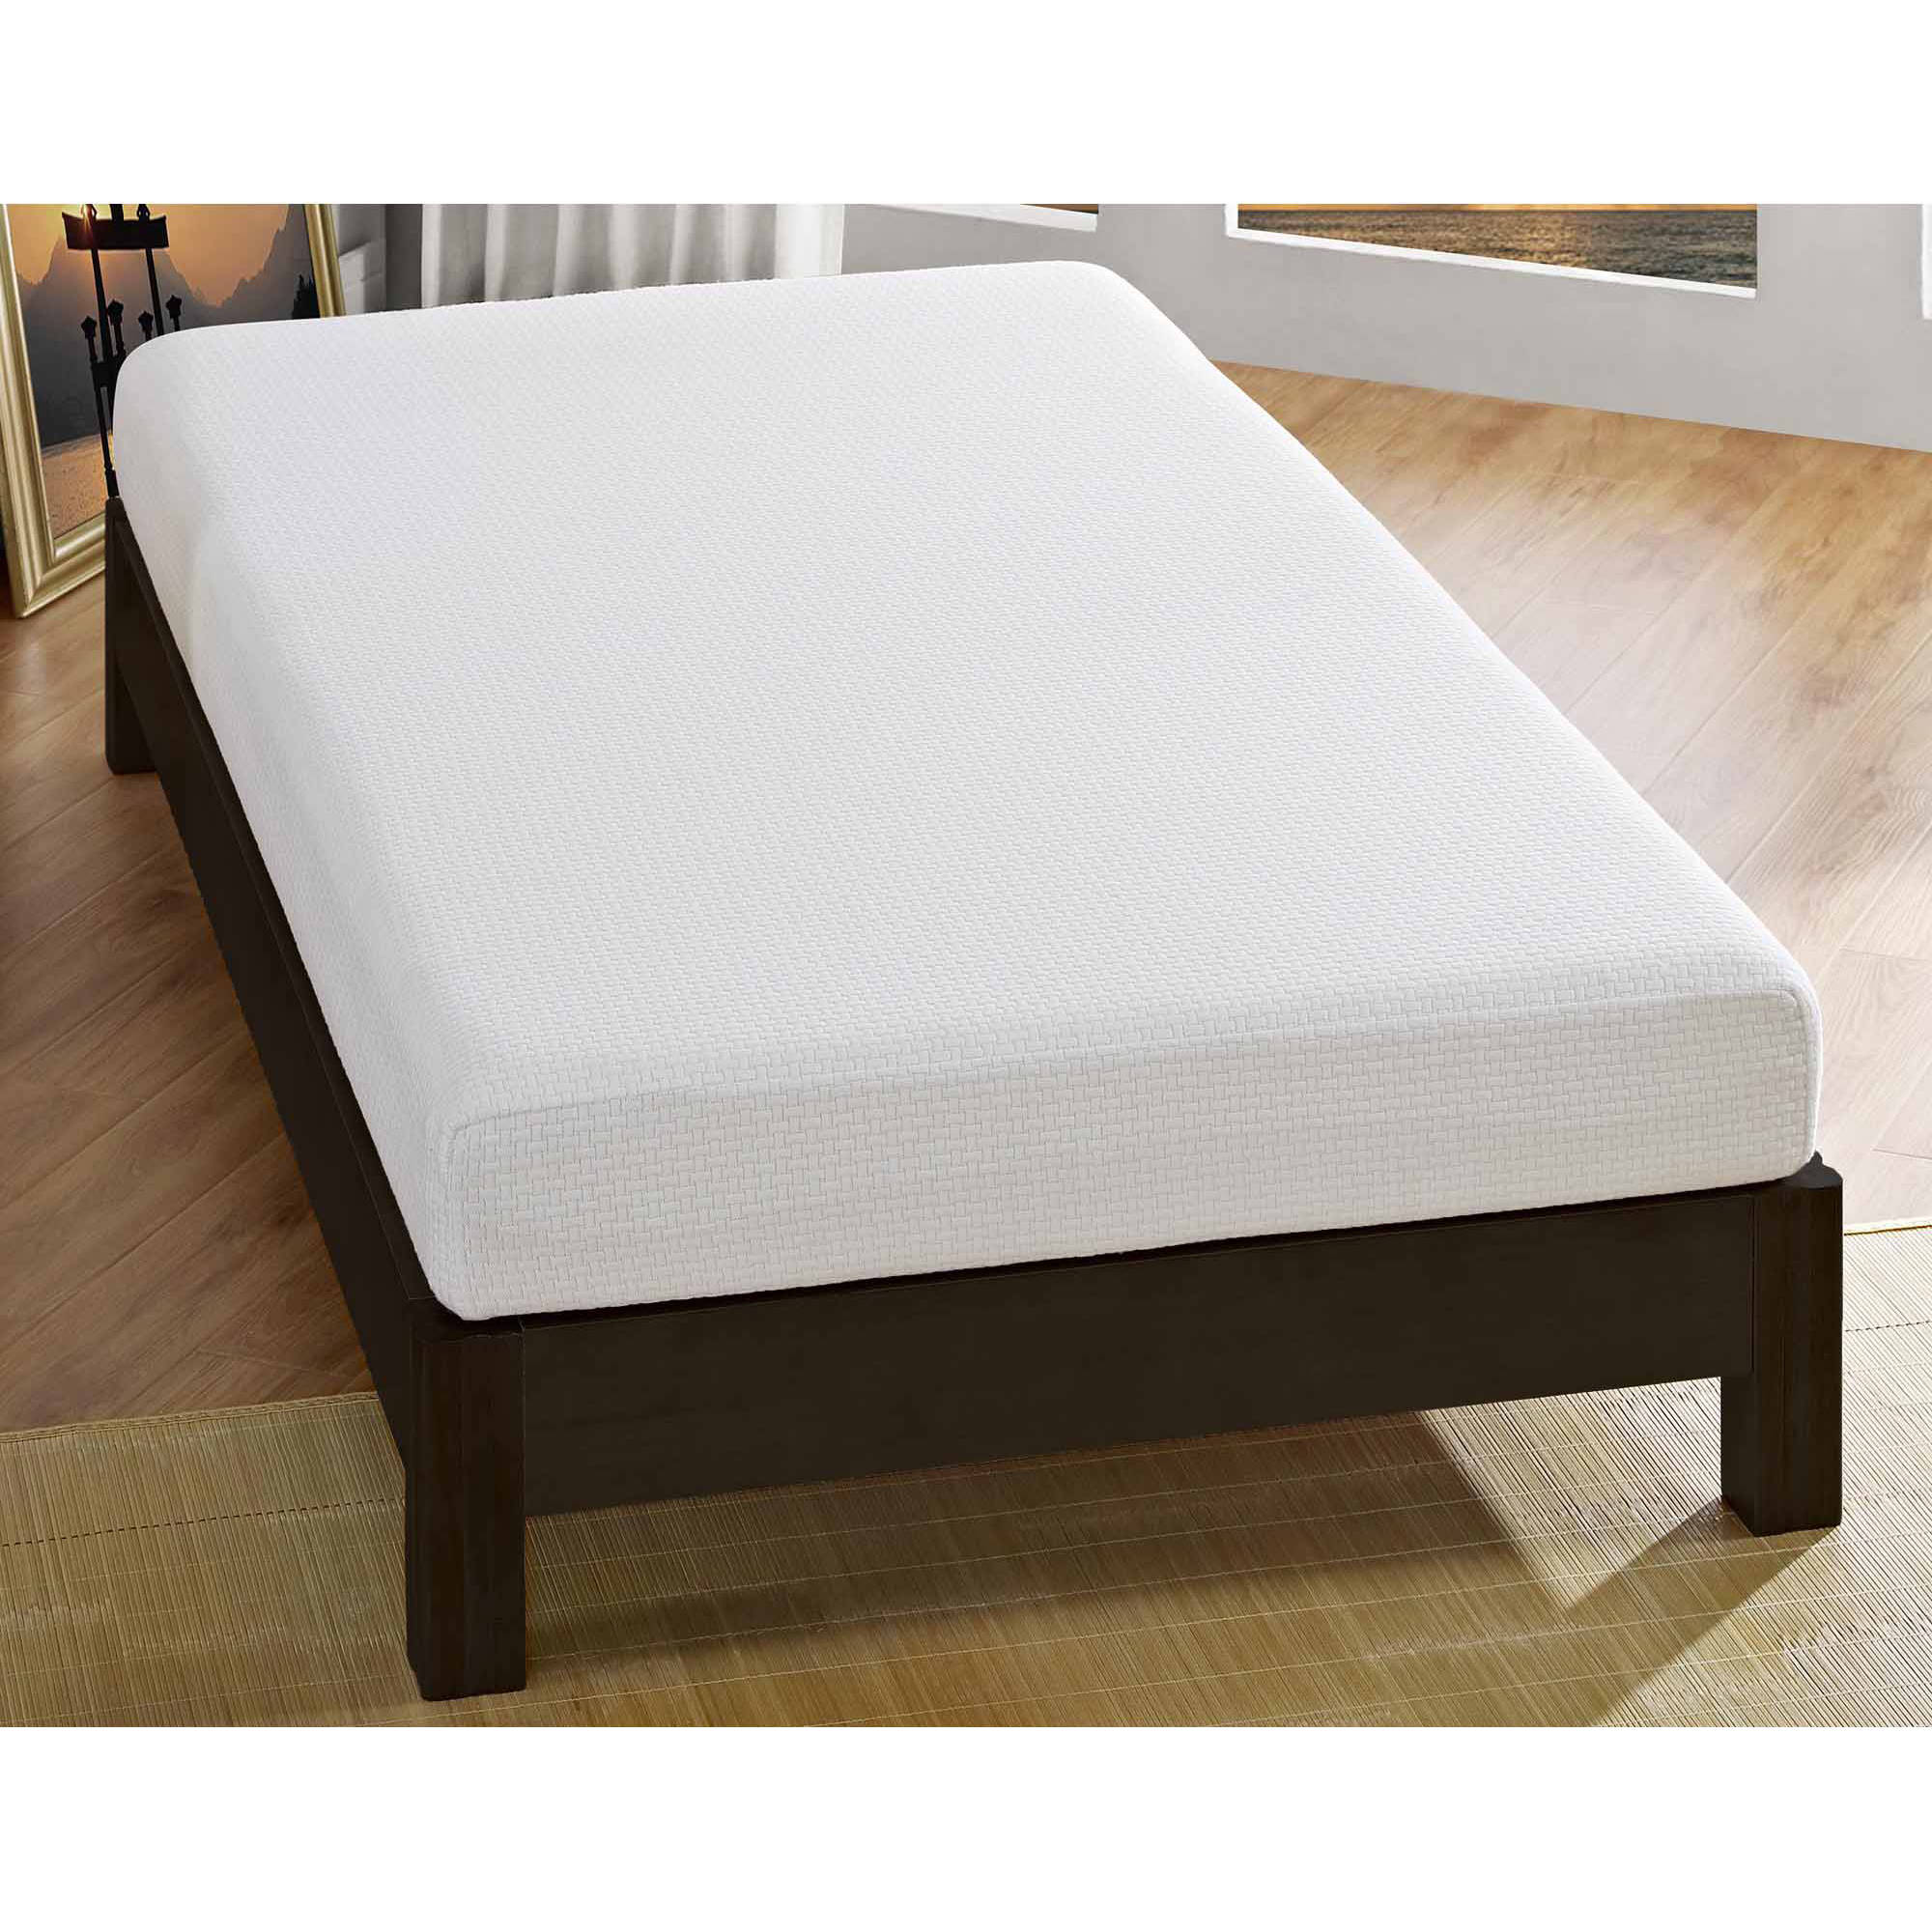 furniture set luxury futon memory multiple mattress and walmart of foam colors awesome ideas frame home mainstays